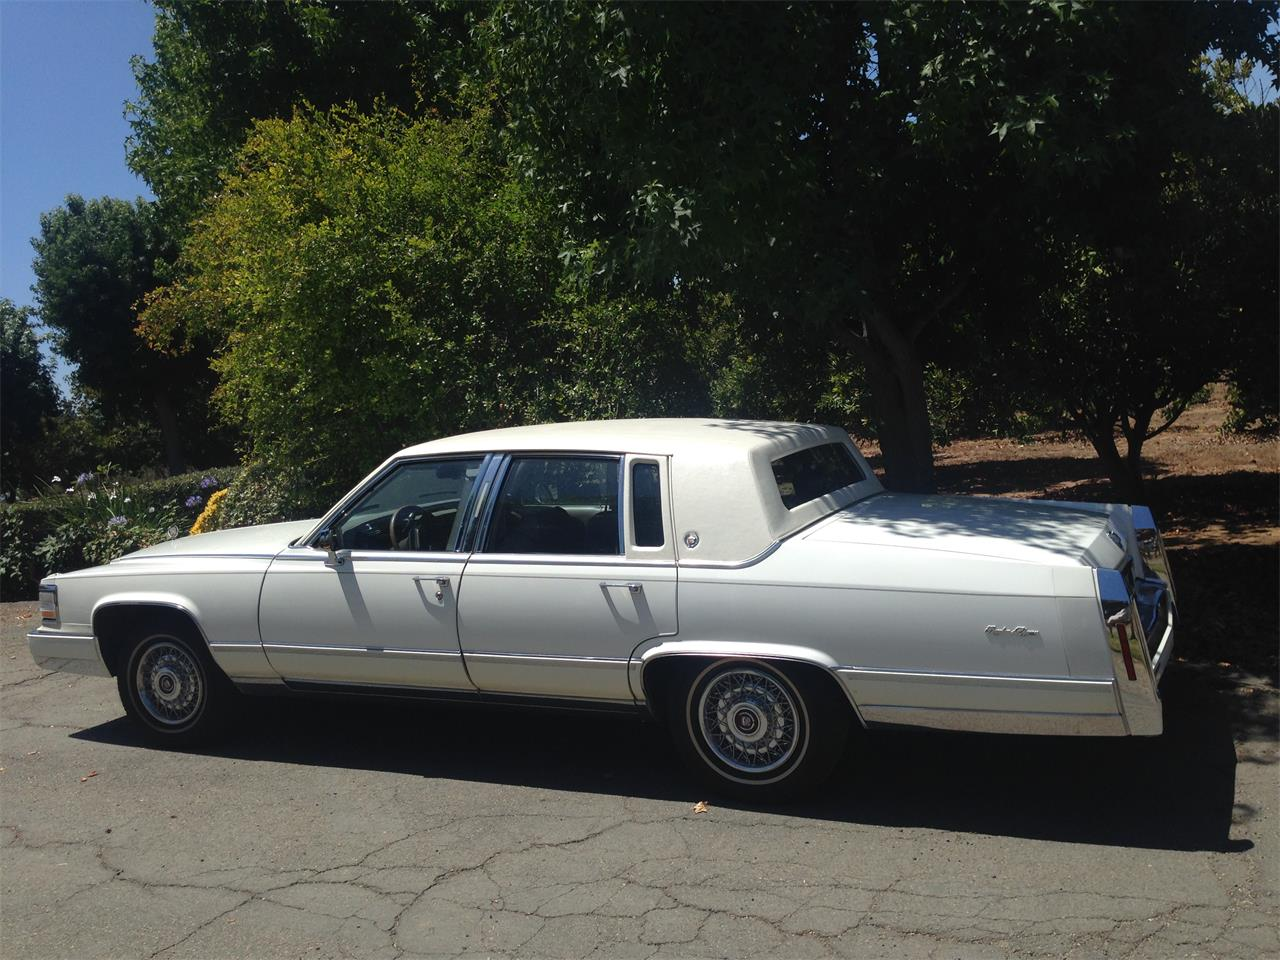 Large Picture of 1990 Cadillac Brougham d'Elegance - $17,900.00 Offered by a Private Seller - LR7K